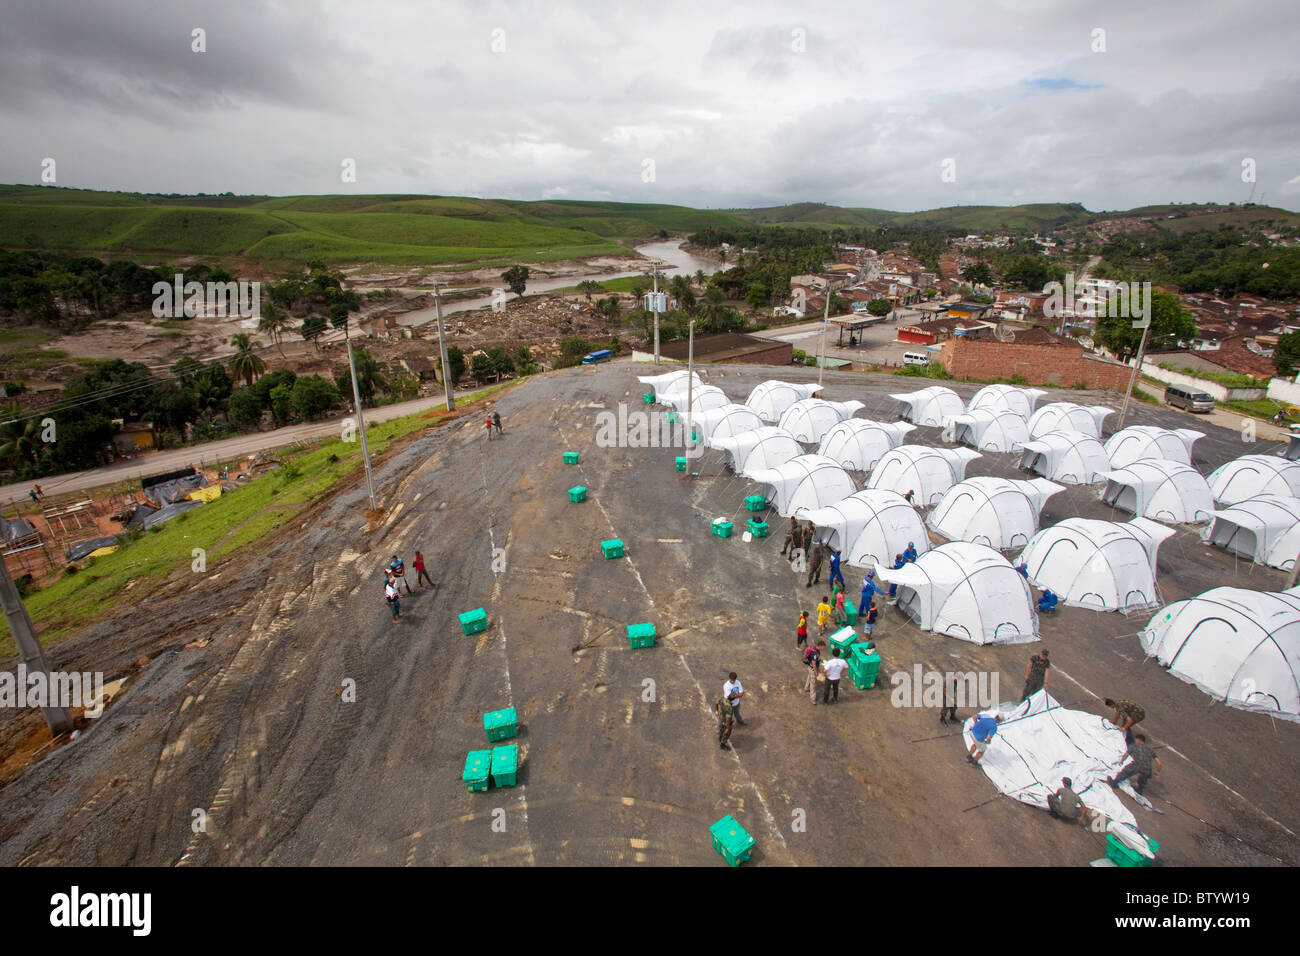 Shelterbox camp at Aqua Preta, Pernambucco, Brazil set up floowing massive floods in July 1010 - Stock Image